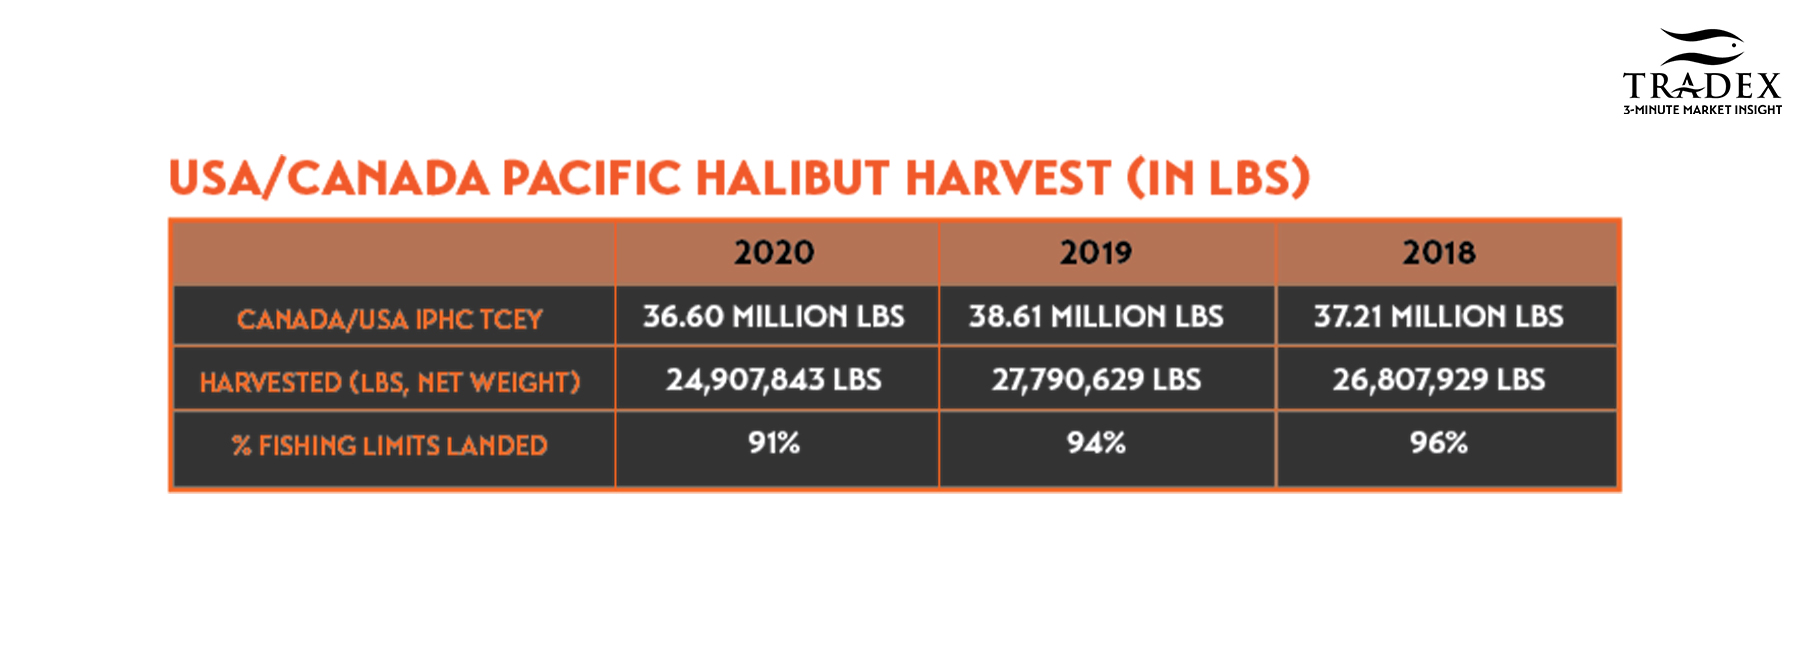 USA/Canada Pacific Halibut Harvest